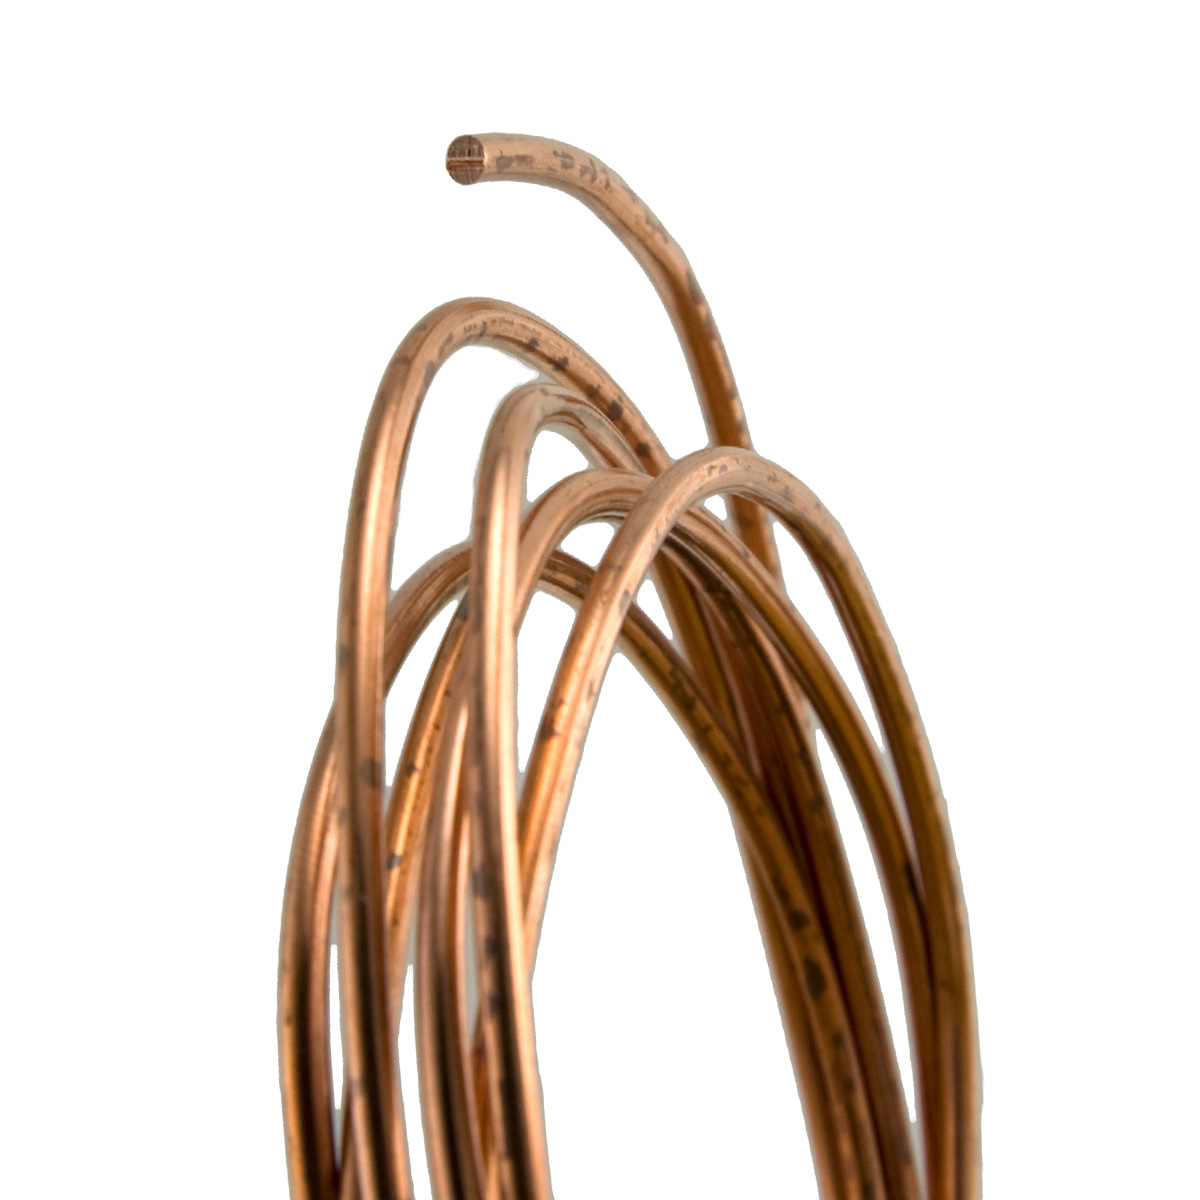 8 Gauge Round Dead Soft Copper Wire: Wire Jewelry | Wire Wrap ...